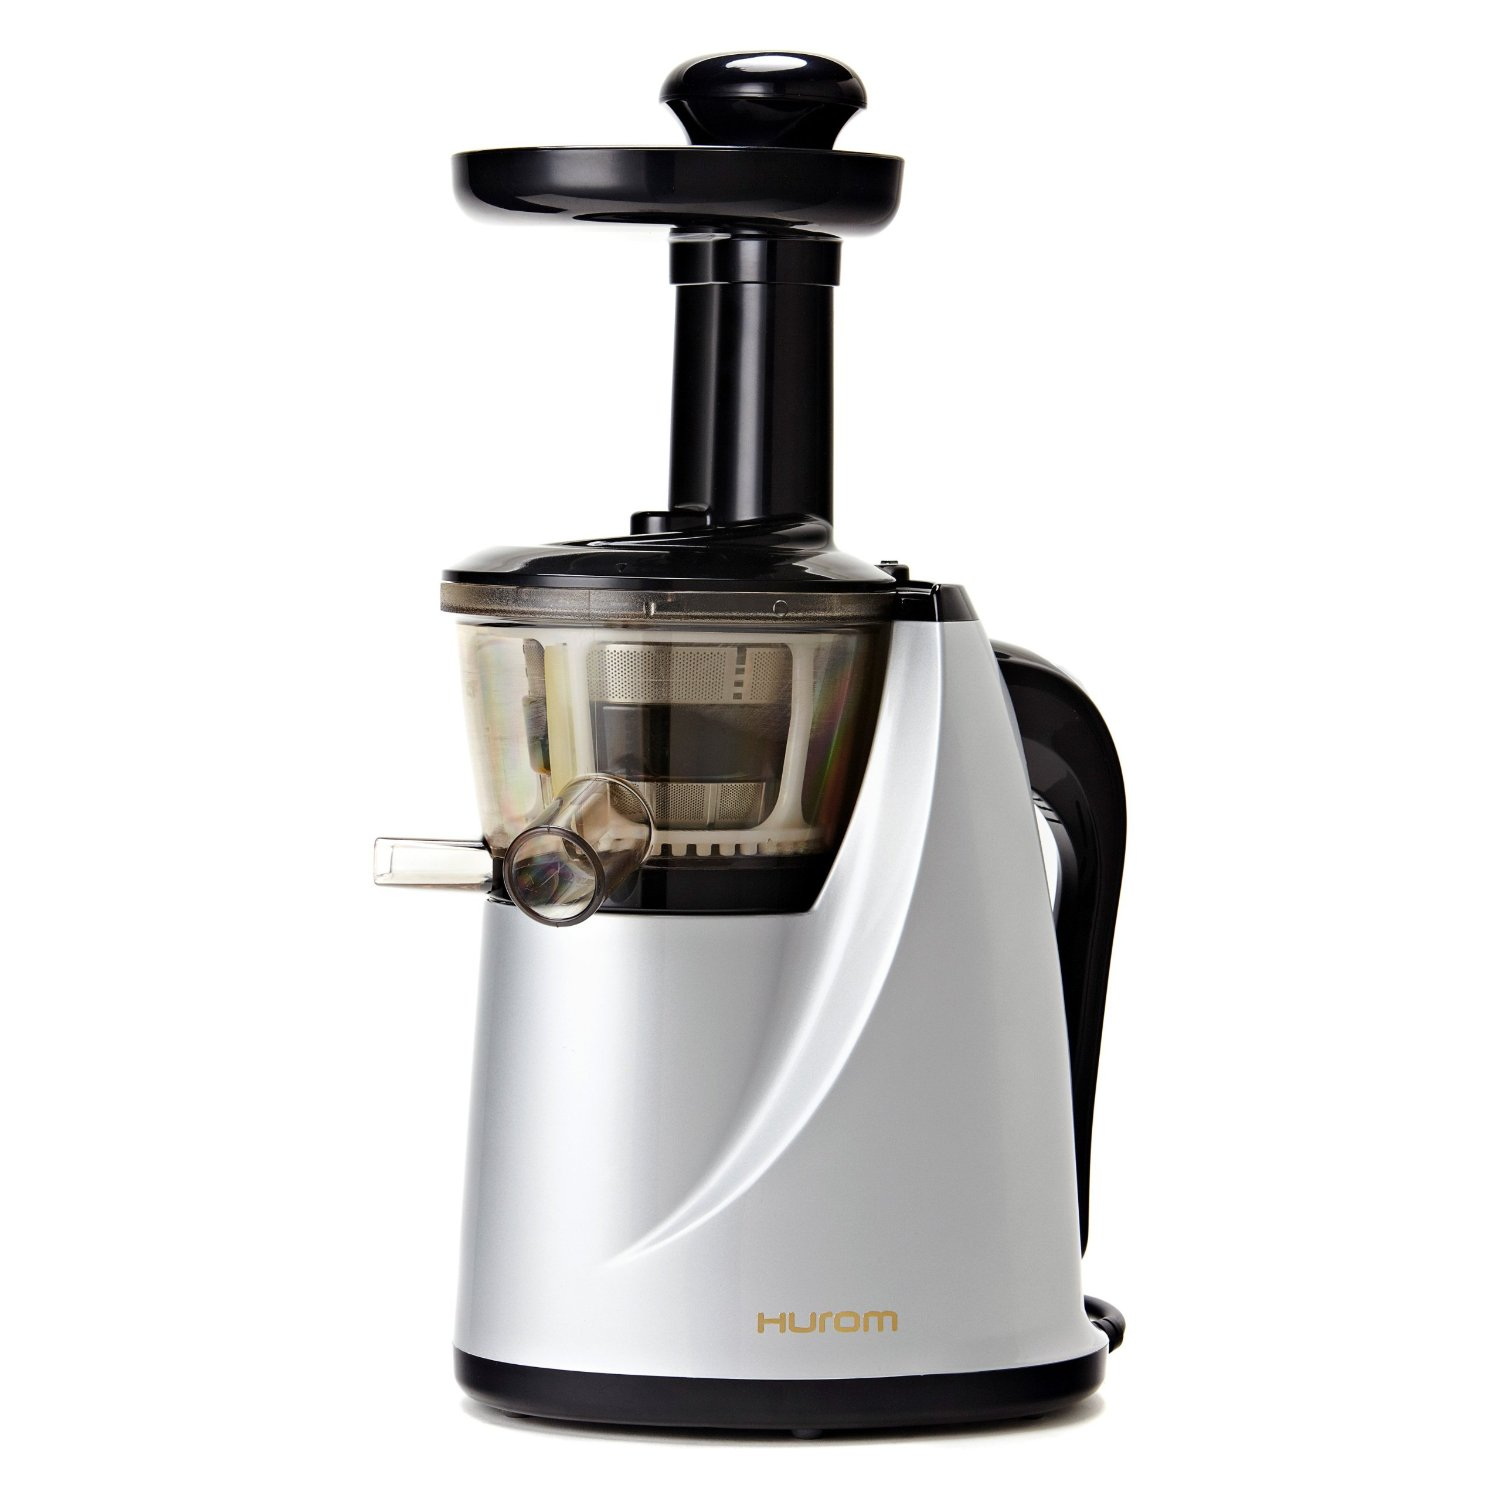 Slow Juicer Hurom Kopen : Hurom HU-100 Masticating Slow Juicer Review - Best Cold Press Juicers